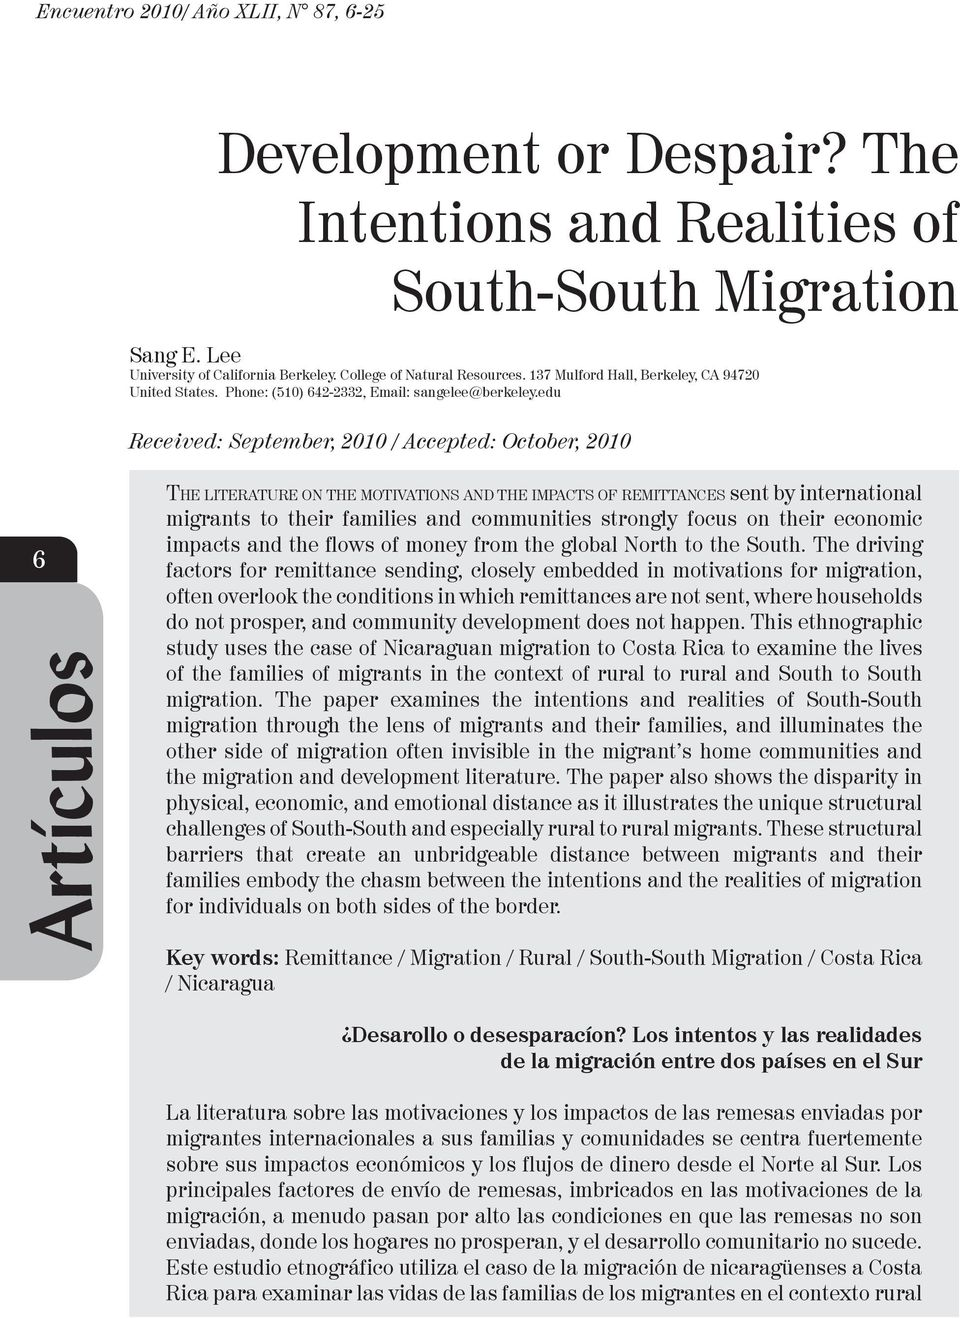 edu Received: September, 2010 / Accepted: October, 2010 6 Artículos The literature on the motivations and the impacts of remittances sent by international migrants to their families and communities